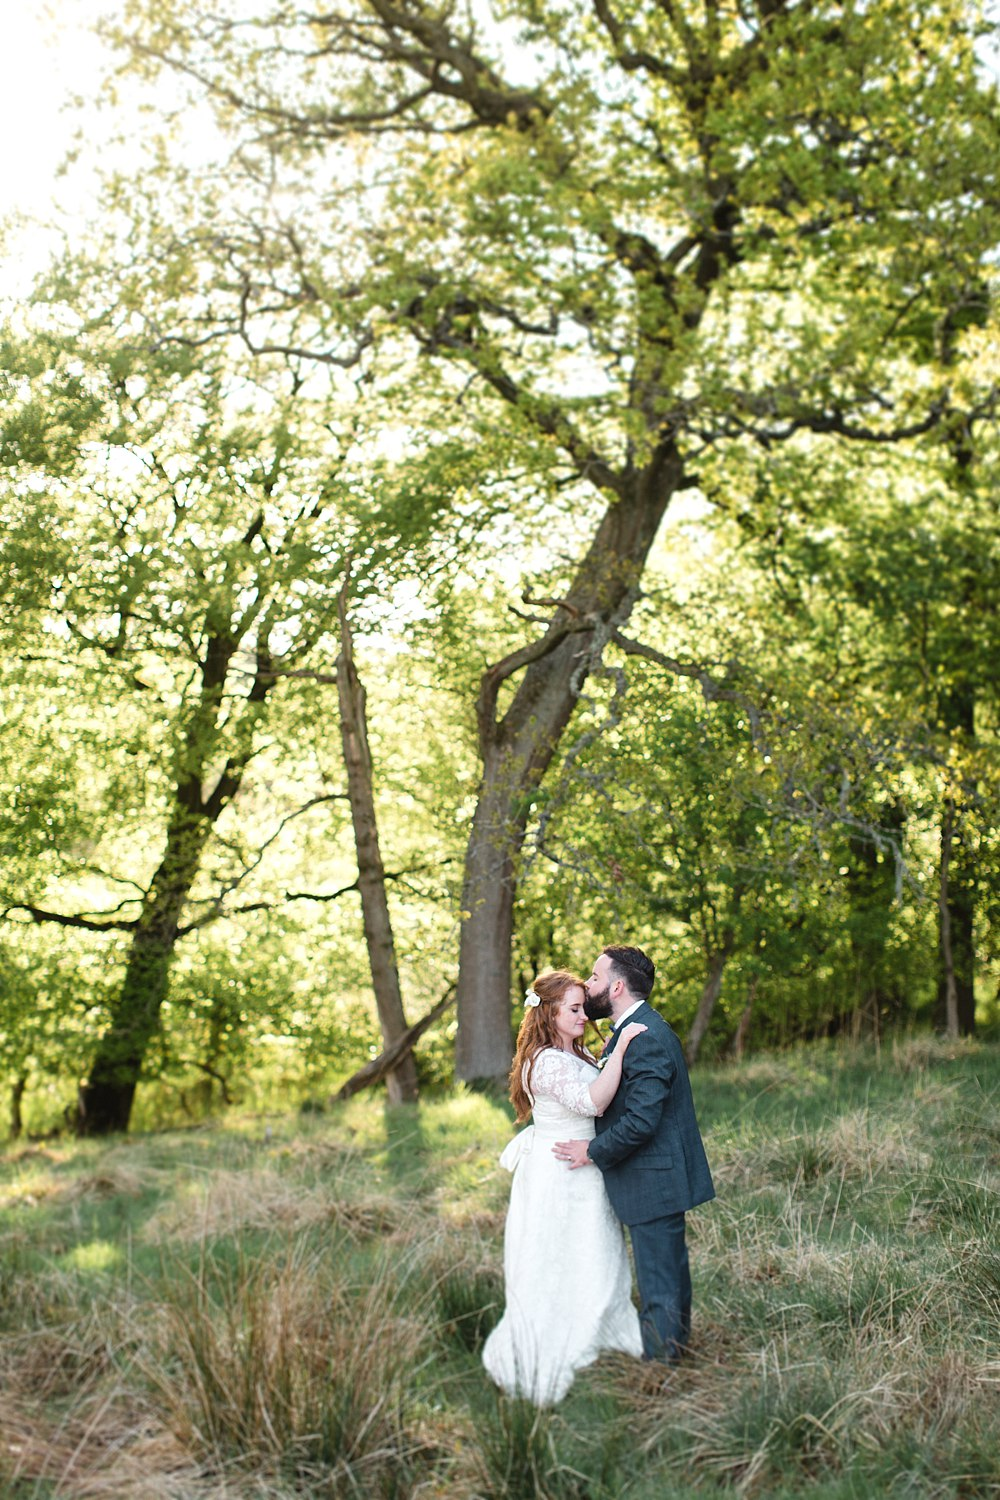 natural romantic fun wedding Eden Leisure Village Scotland highlights 29-13.jpg